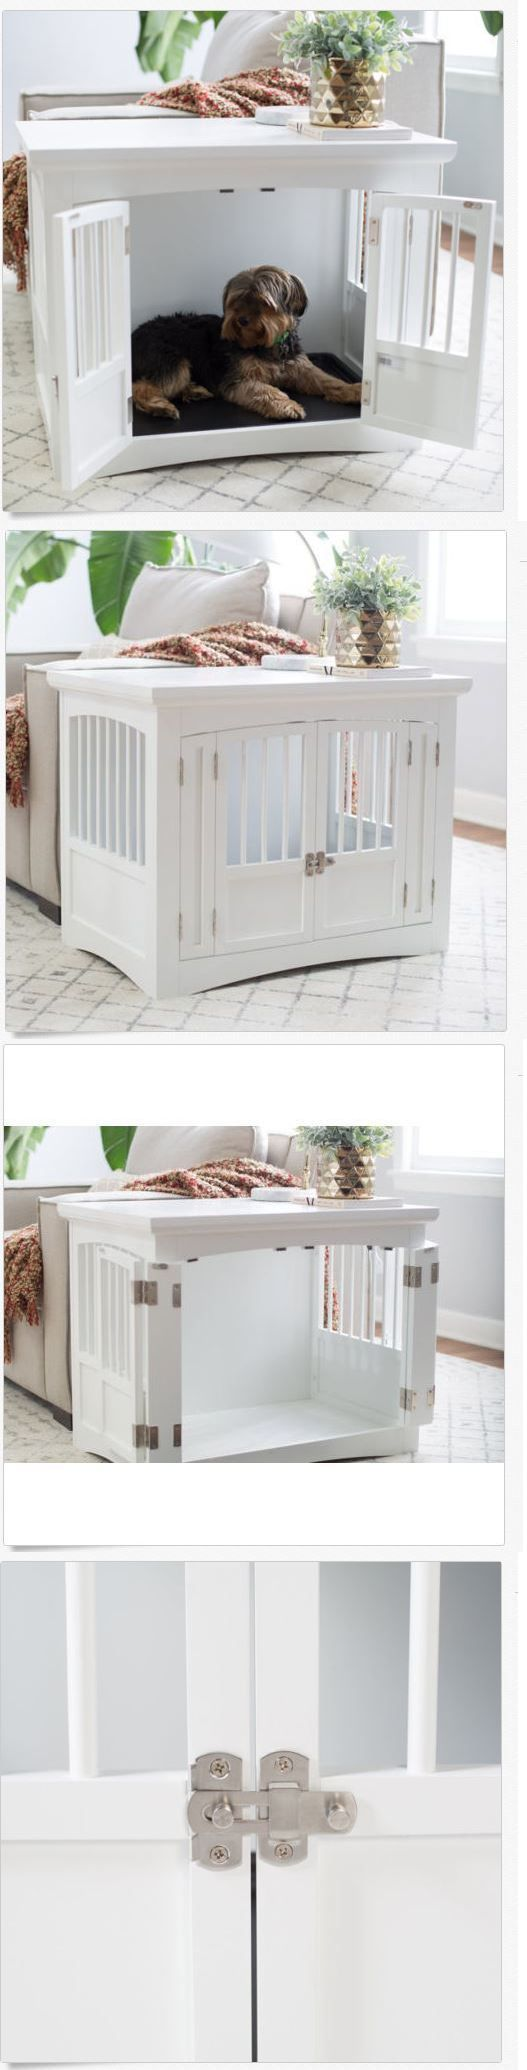 Animals Dog: End Table Dog Crate White Pet Kennel Cage Wood Indoor House  Furniture Puppy